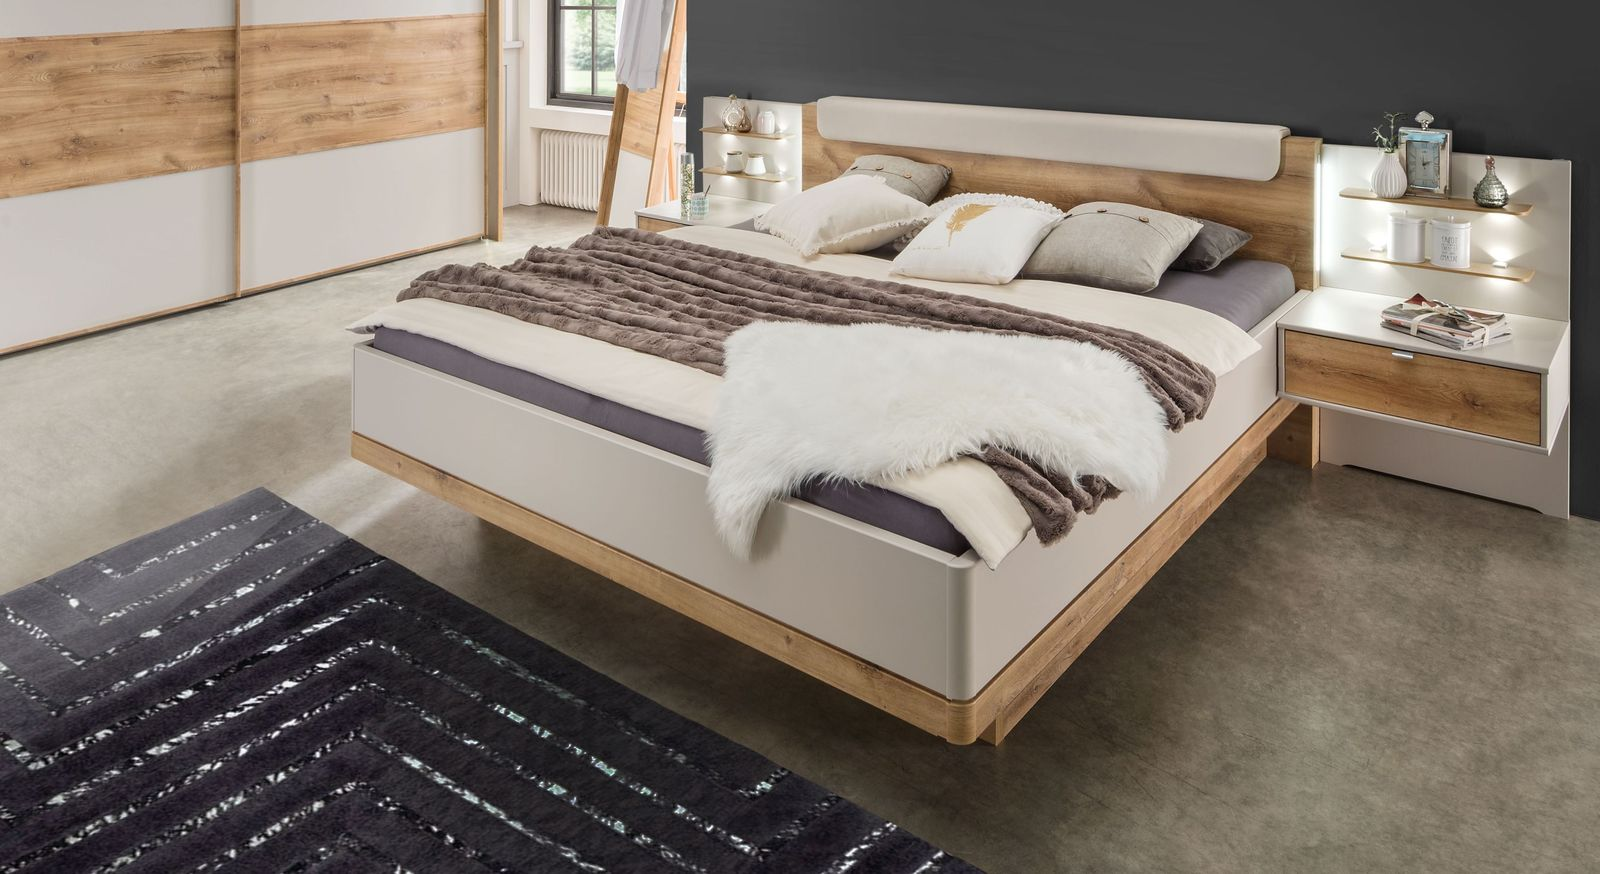 Bett Seabrook in stylischem Materialmix